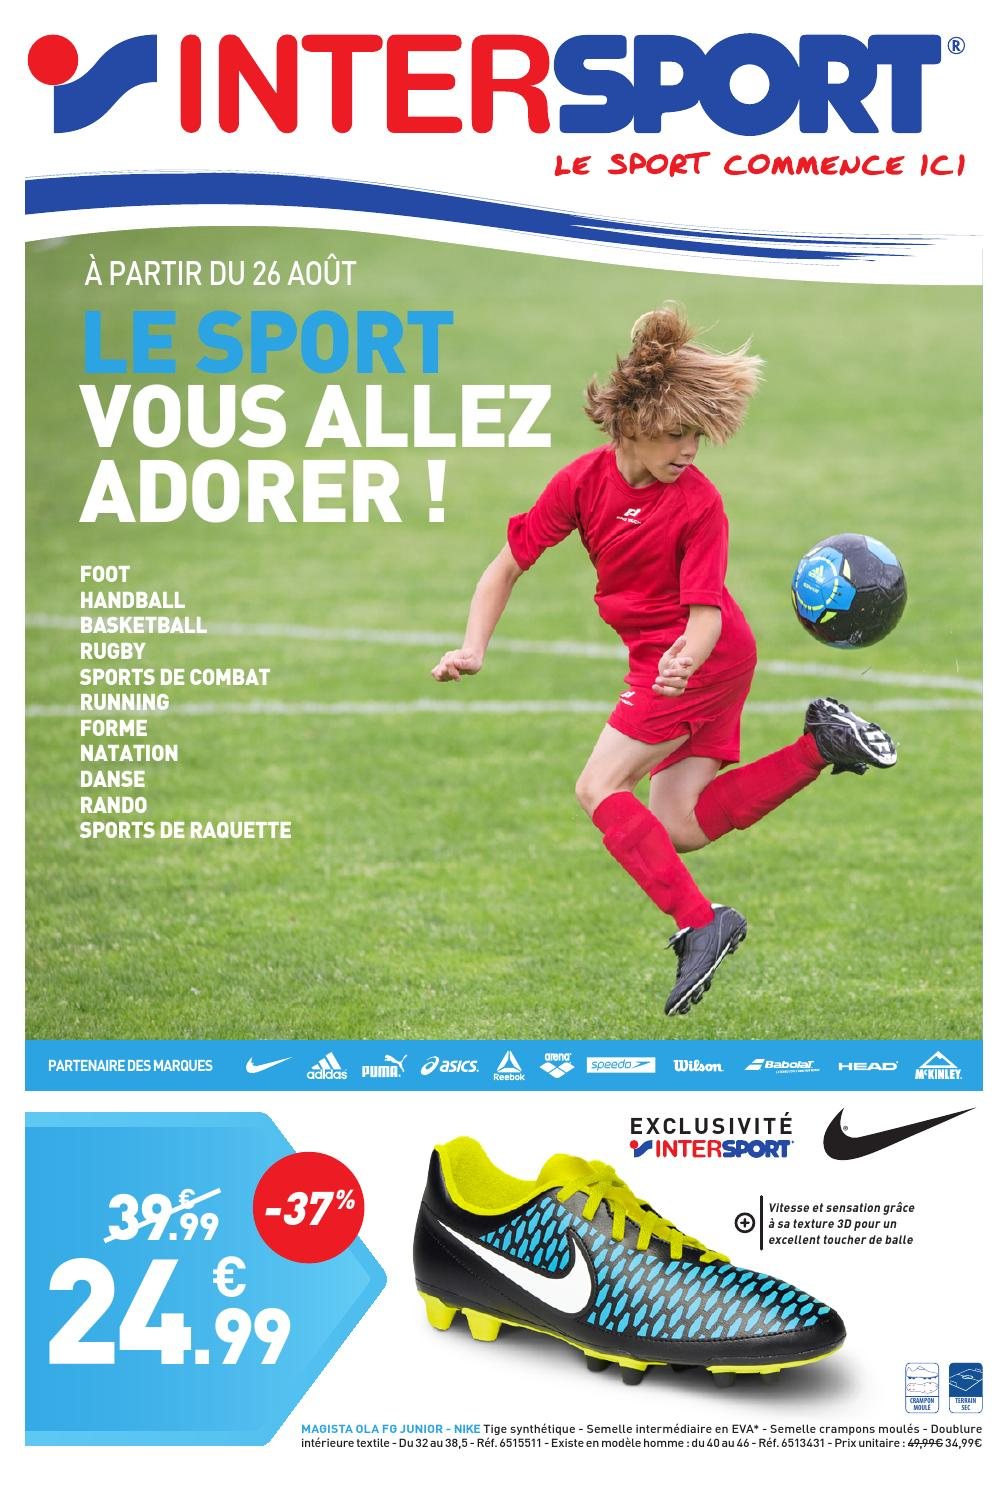 INTERSPORT Le Sport Vous Allez Adorer ! (28 pages) by